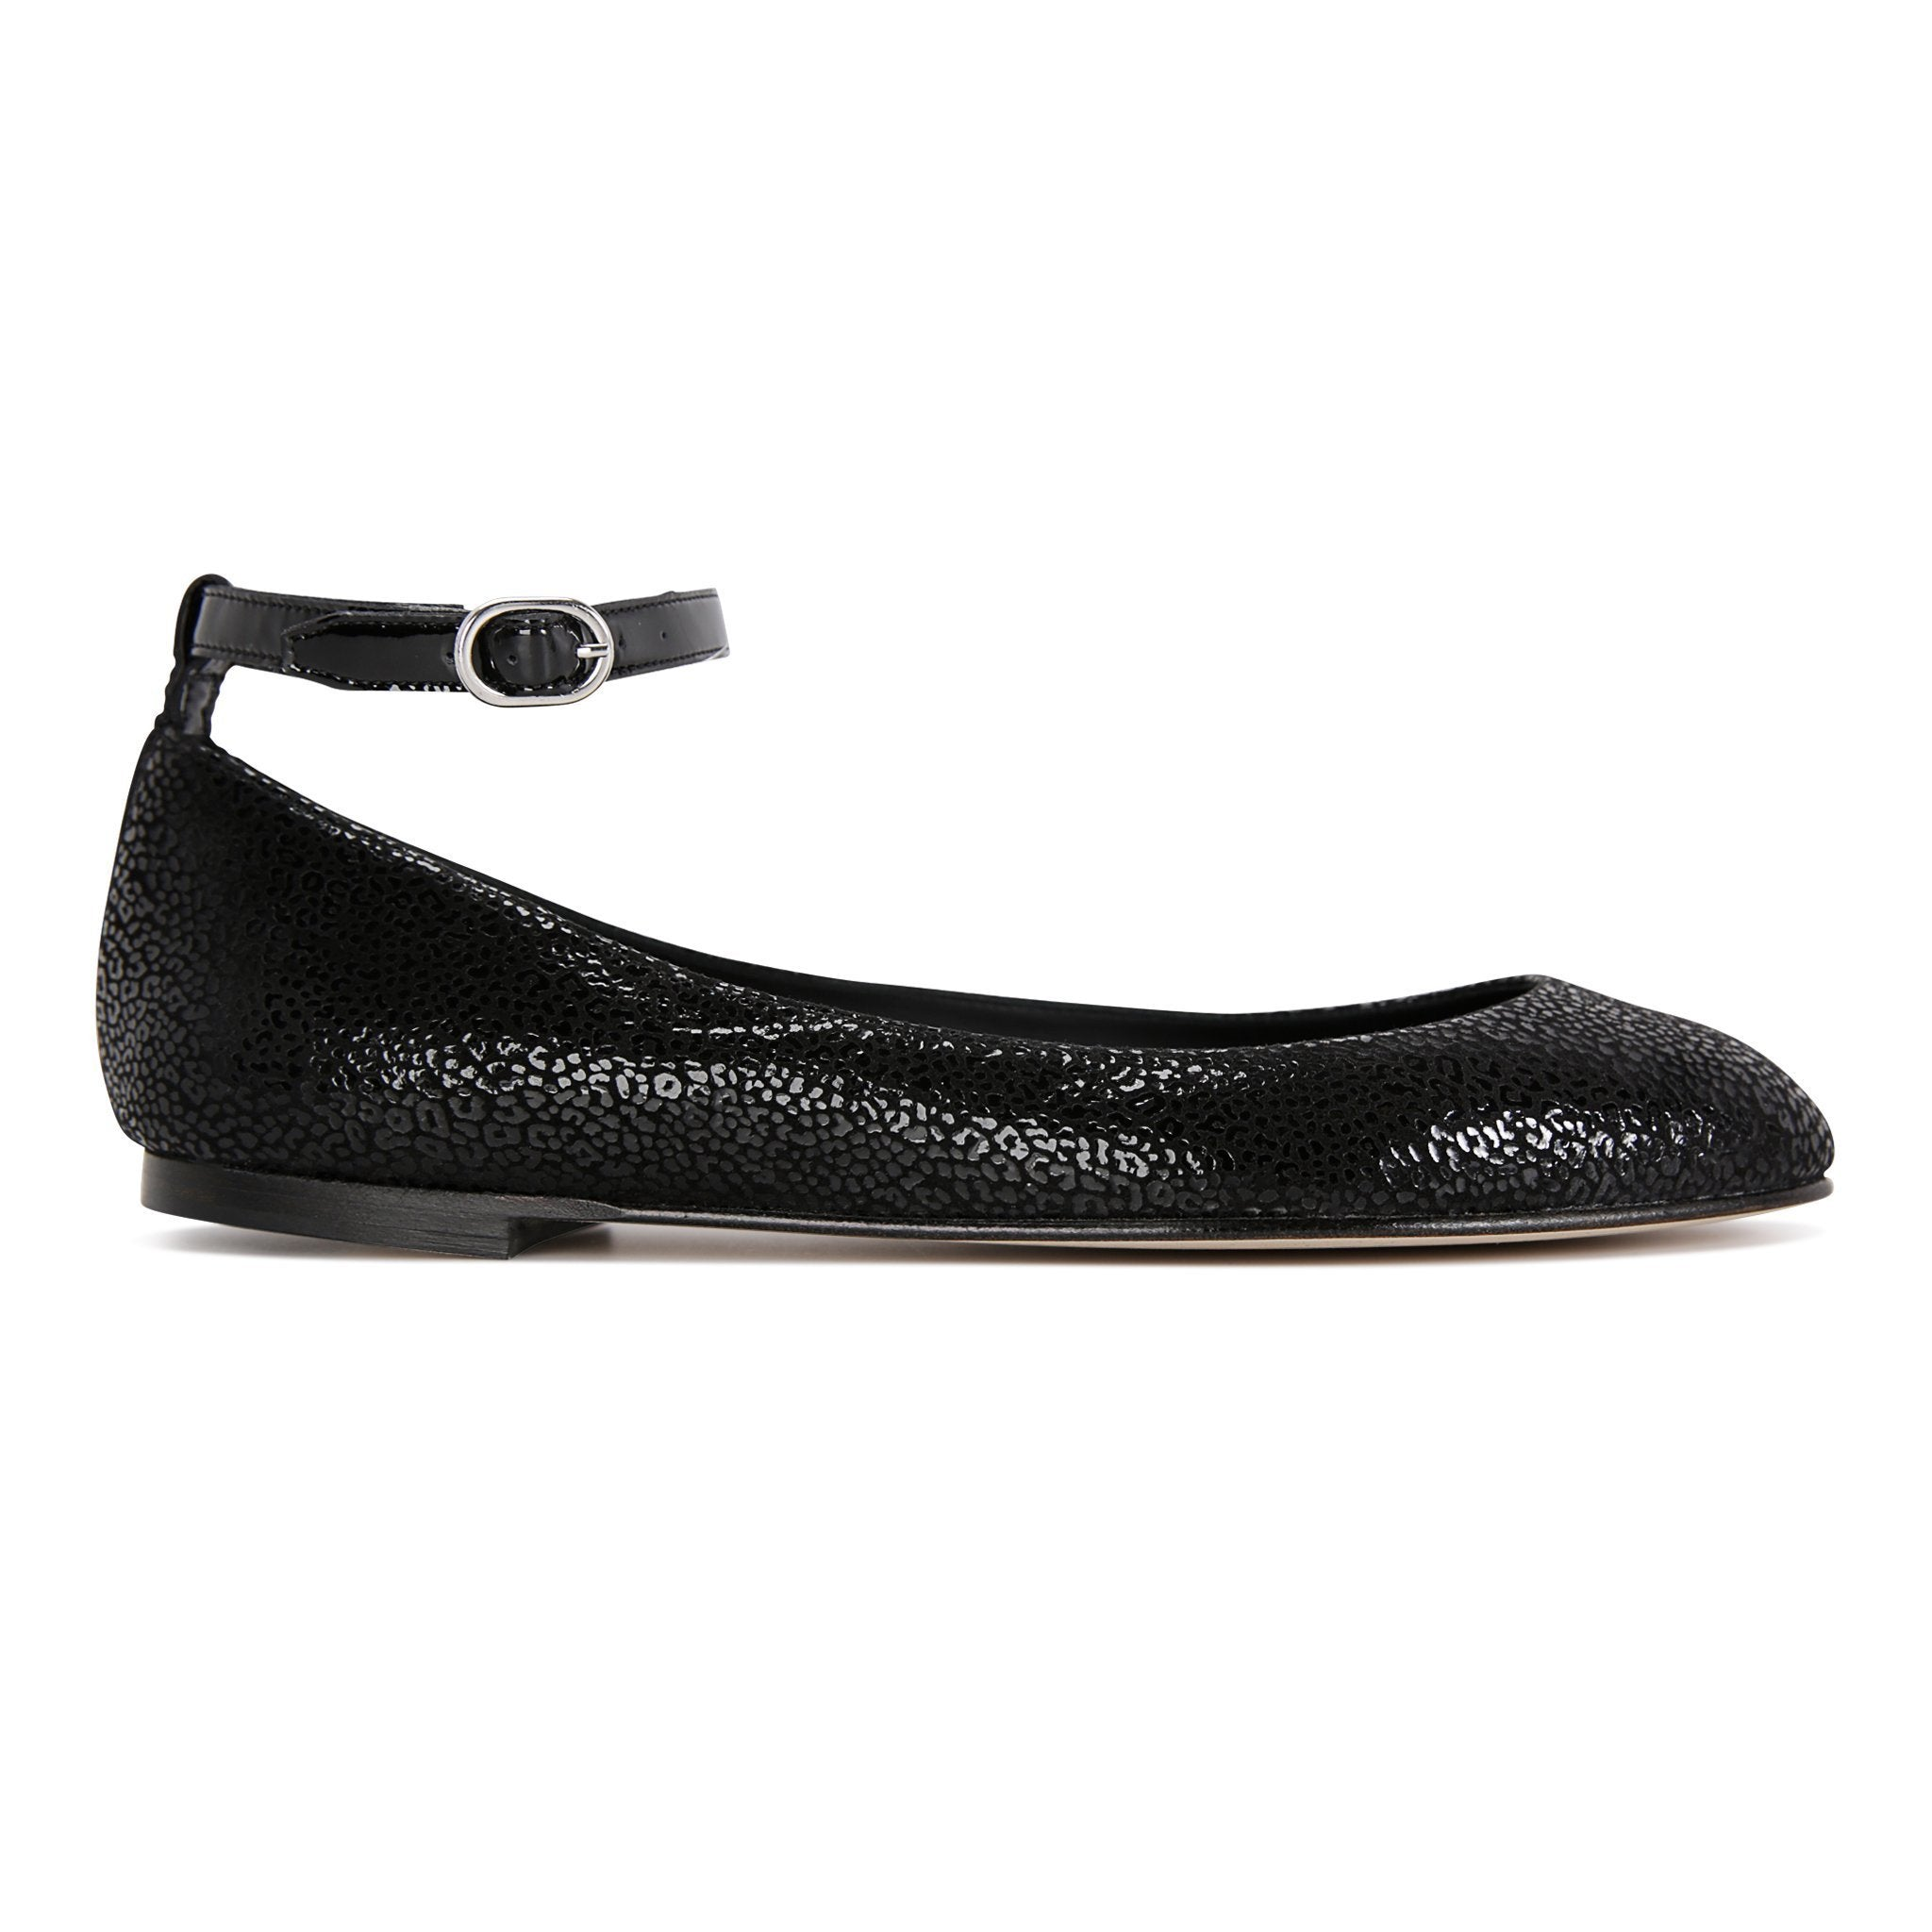 TORINO - Savannah Nero + Patent, VIAJIYU - Women's Hand Made Sustainable Luxury Shoes. Made in Italy. Made to Order.